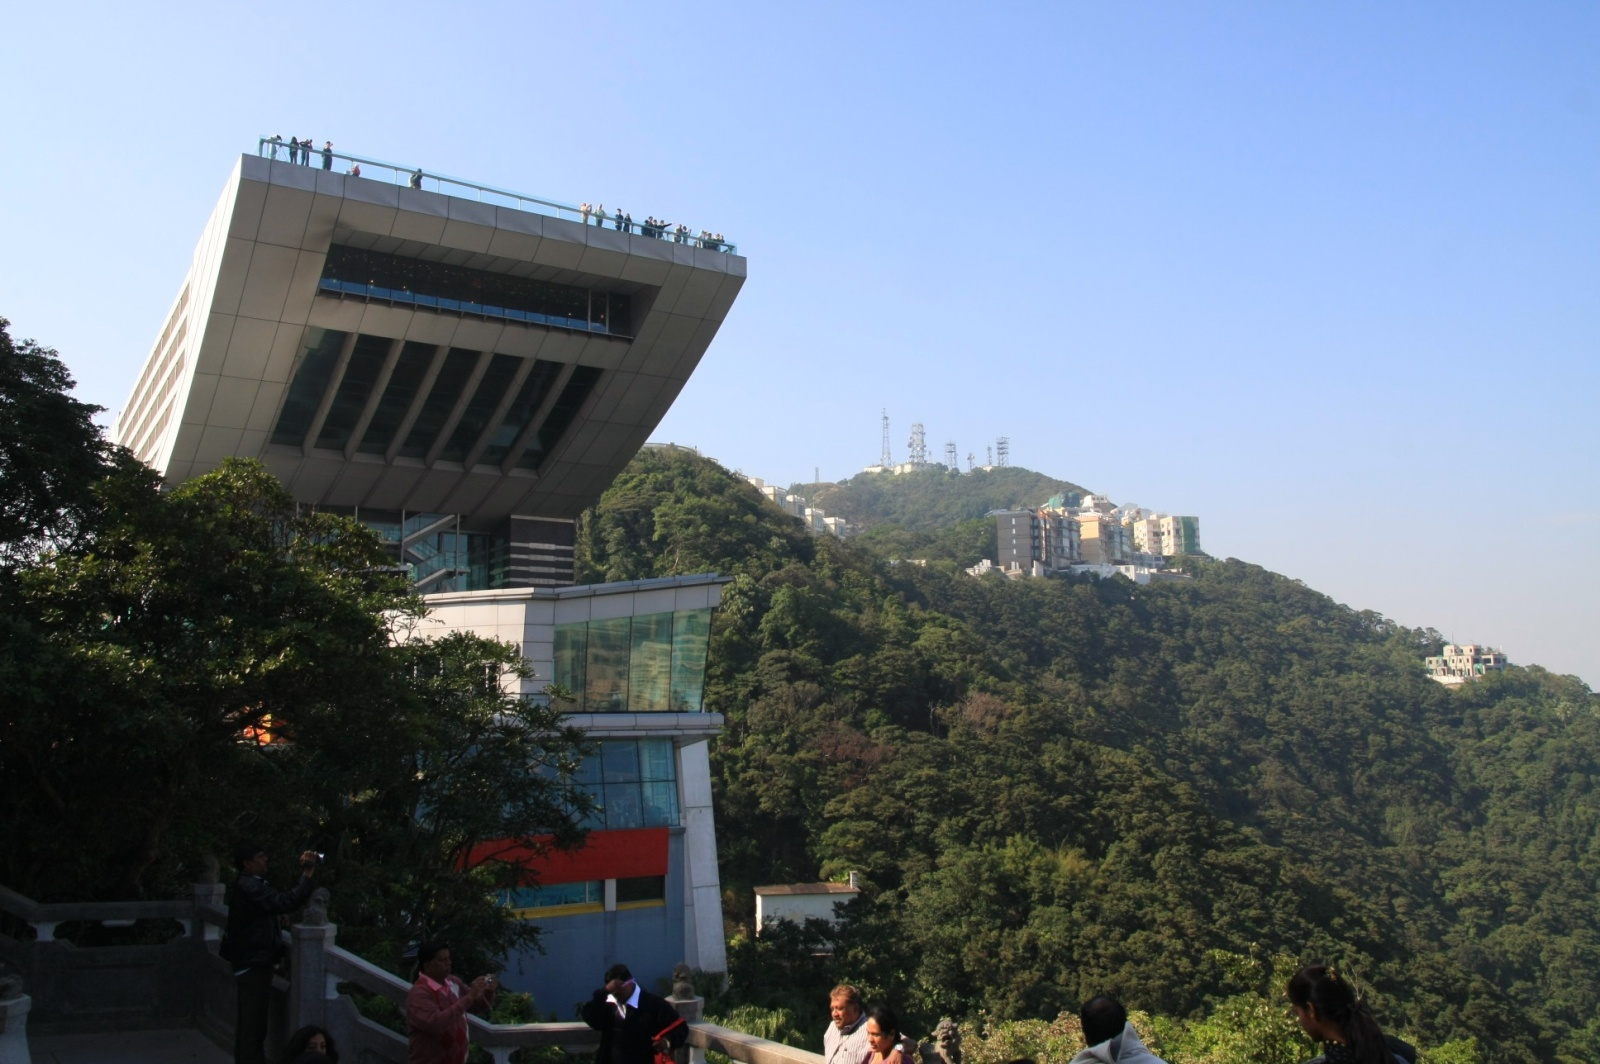 The Victoria Peak gallery, with awfully many restaurants, shops, and tons of tourists